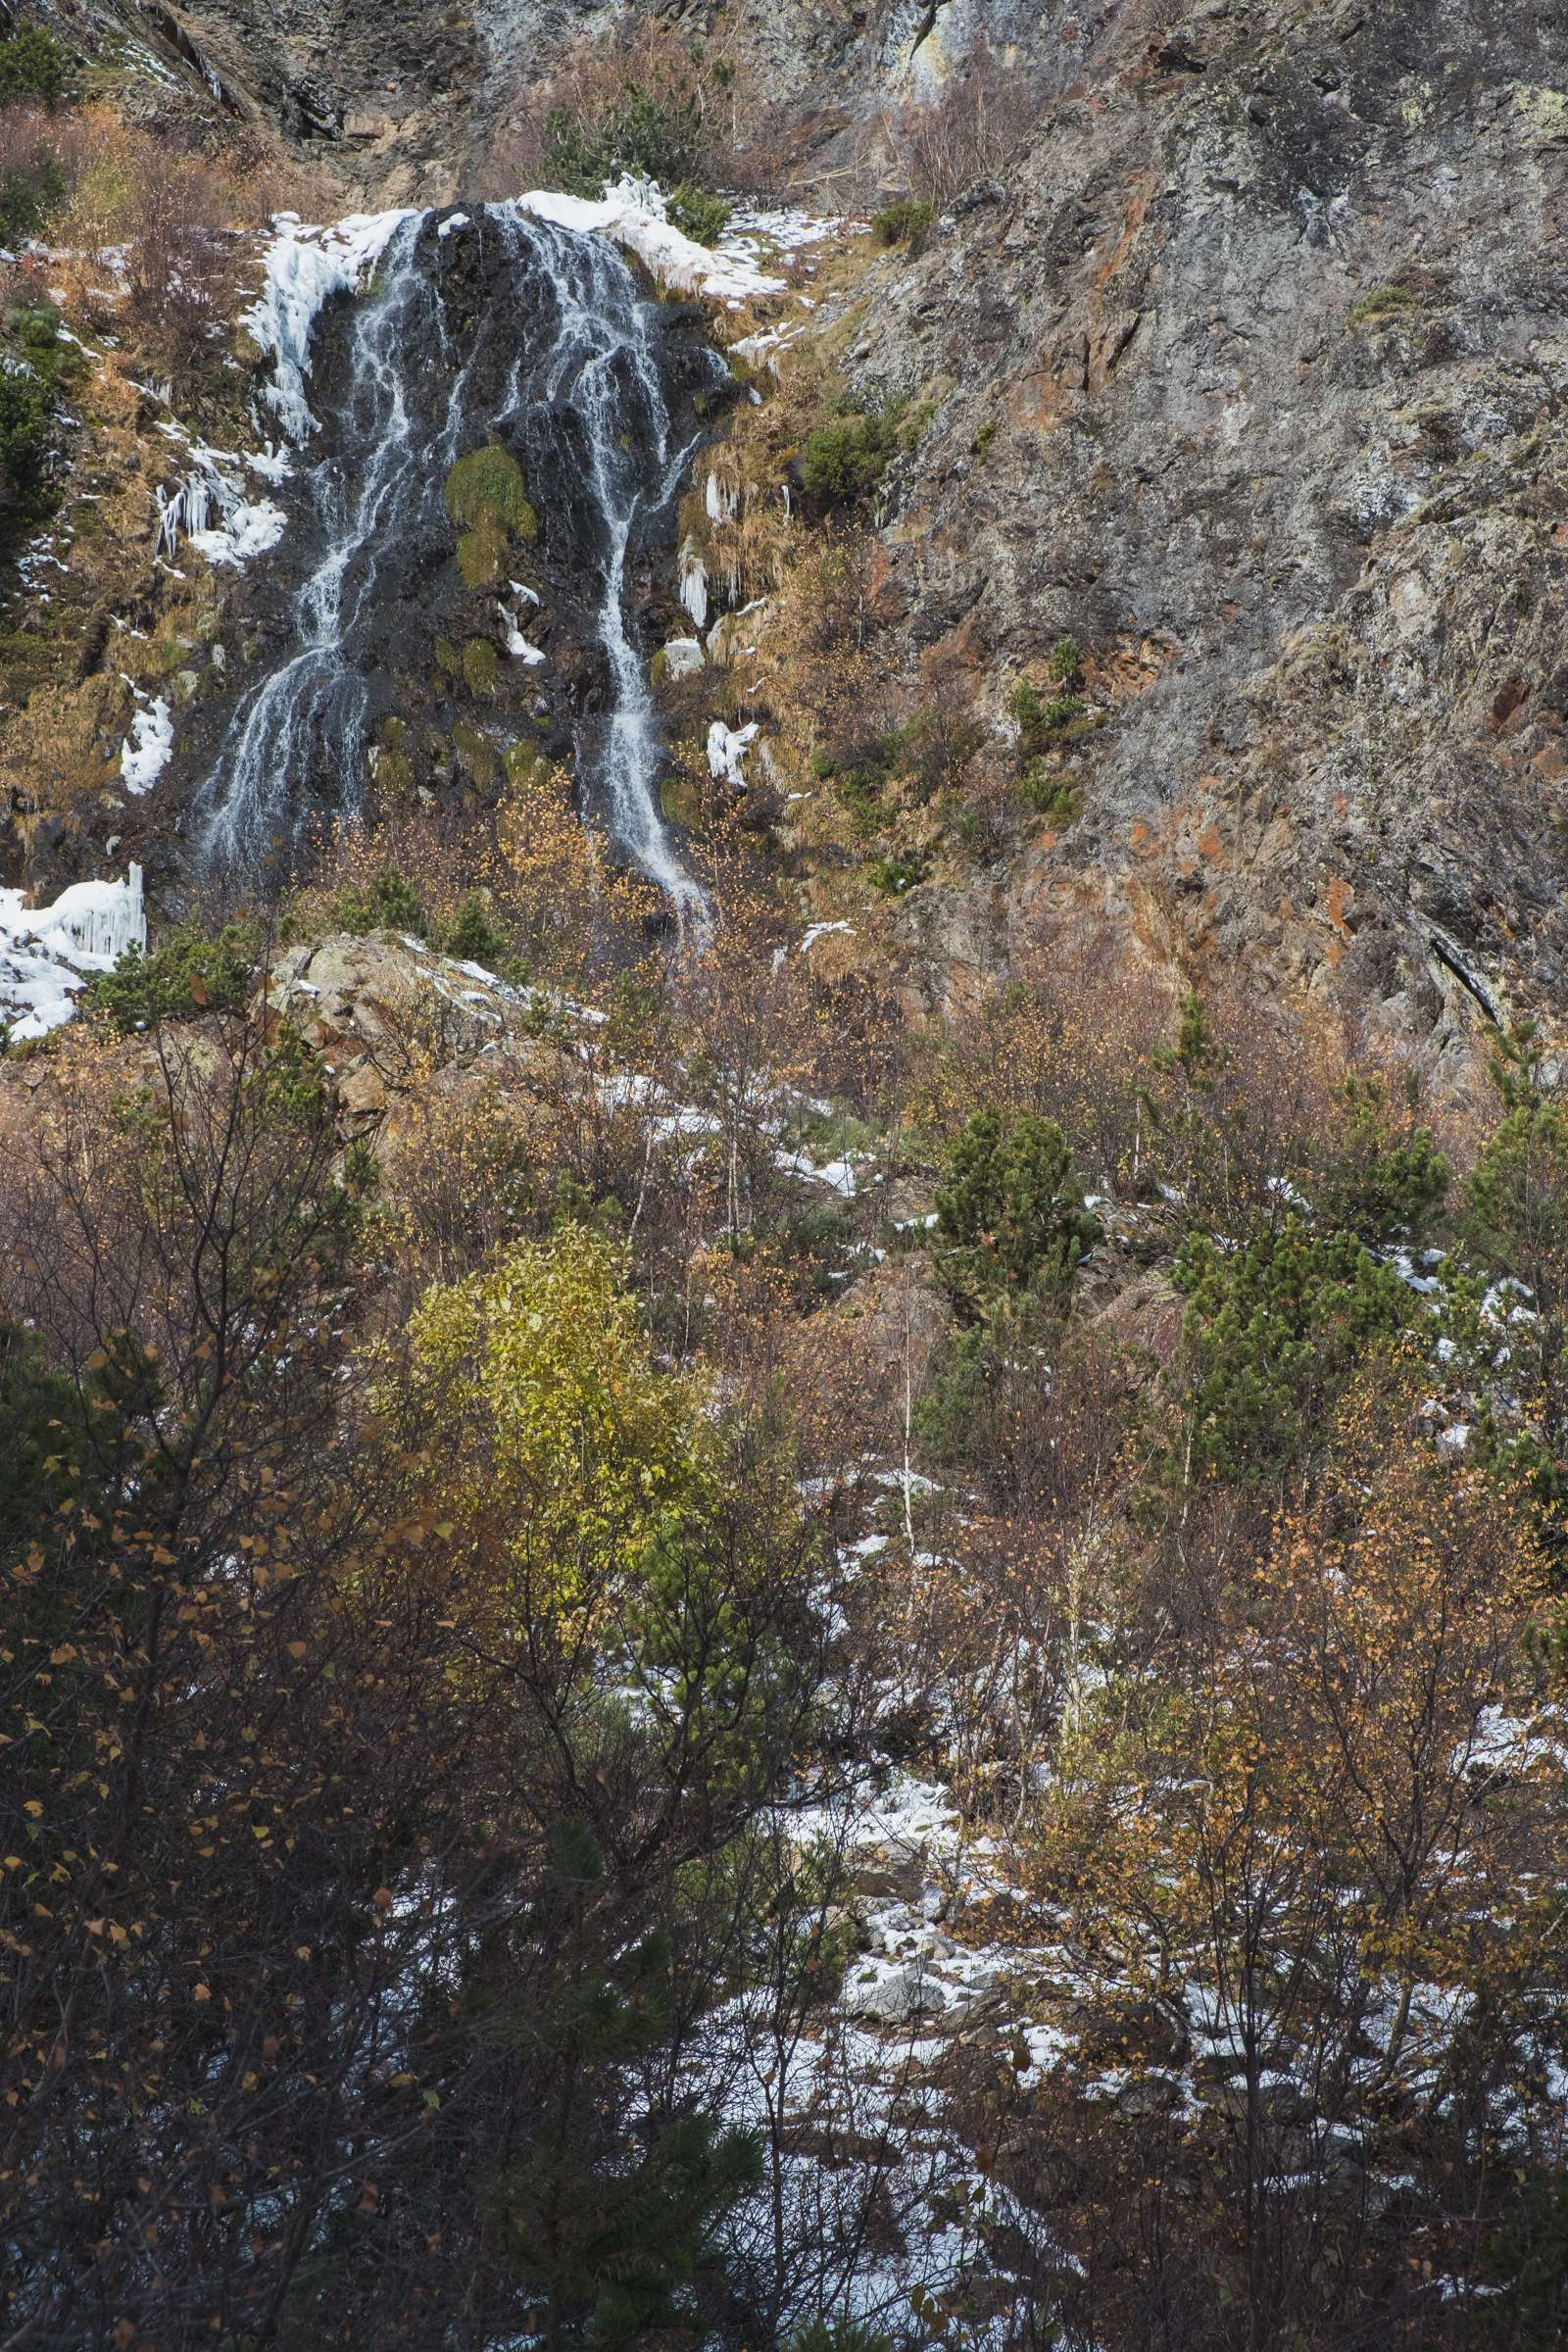 Waterfall in Aigüestortes i Estany of Saint Maurici national park